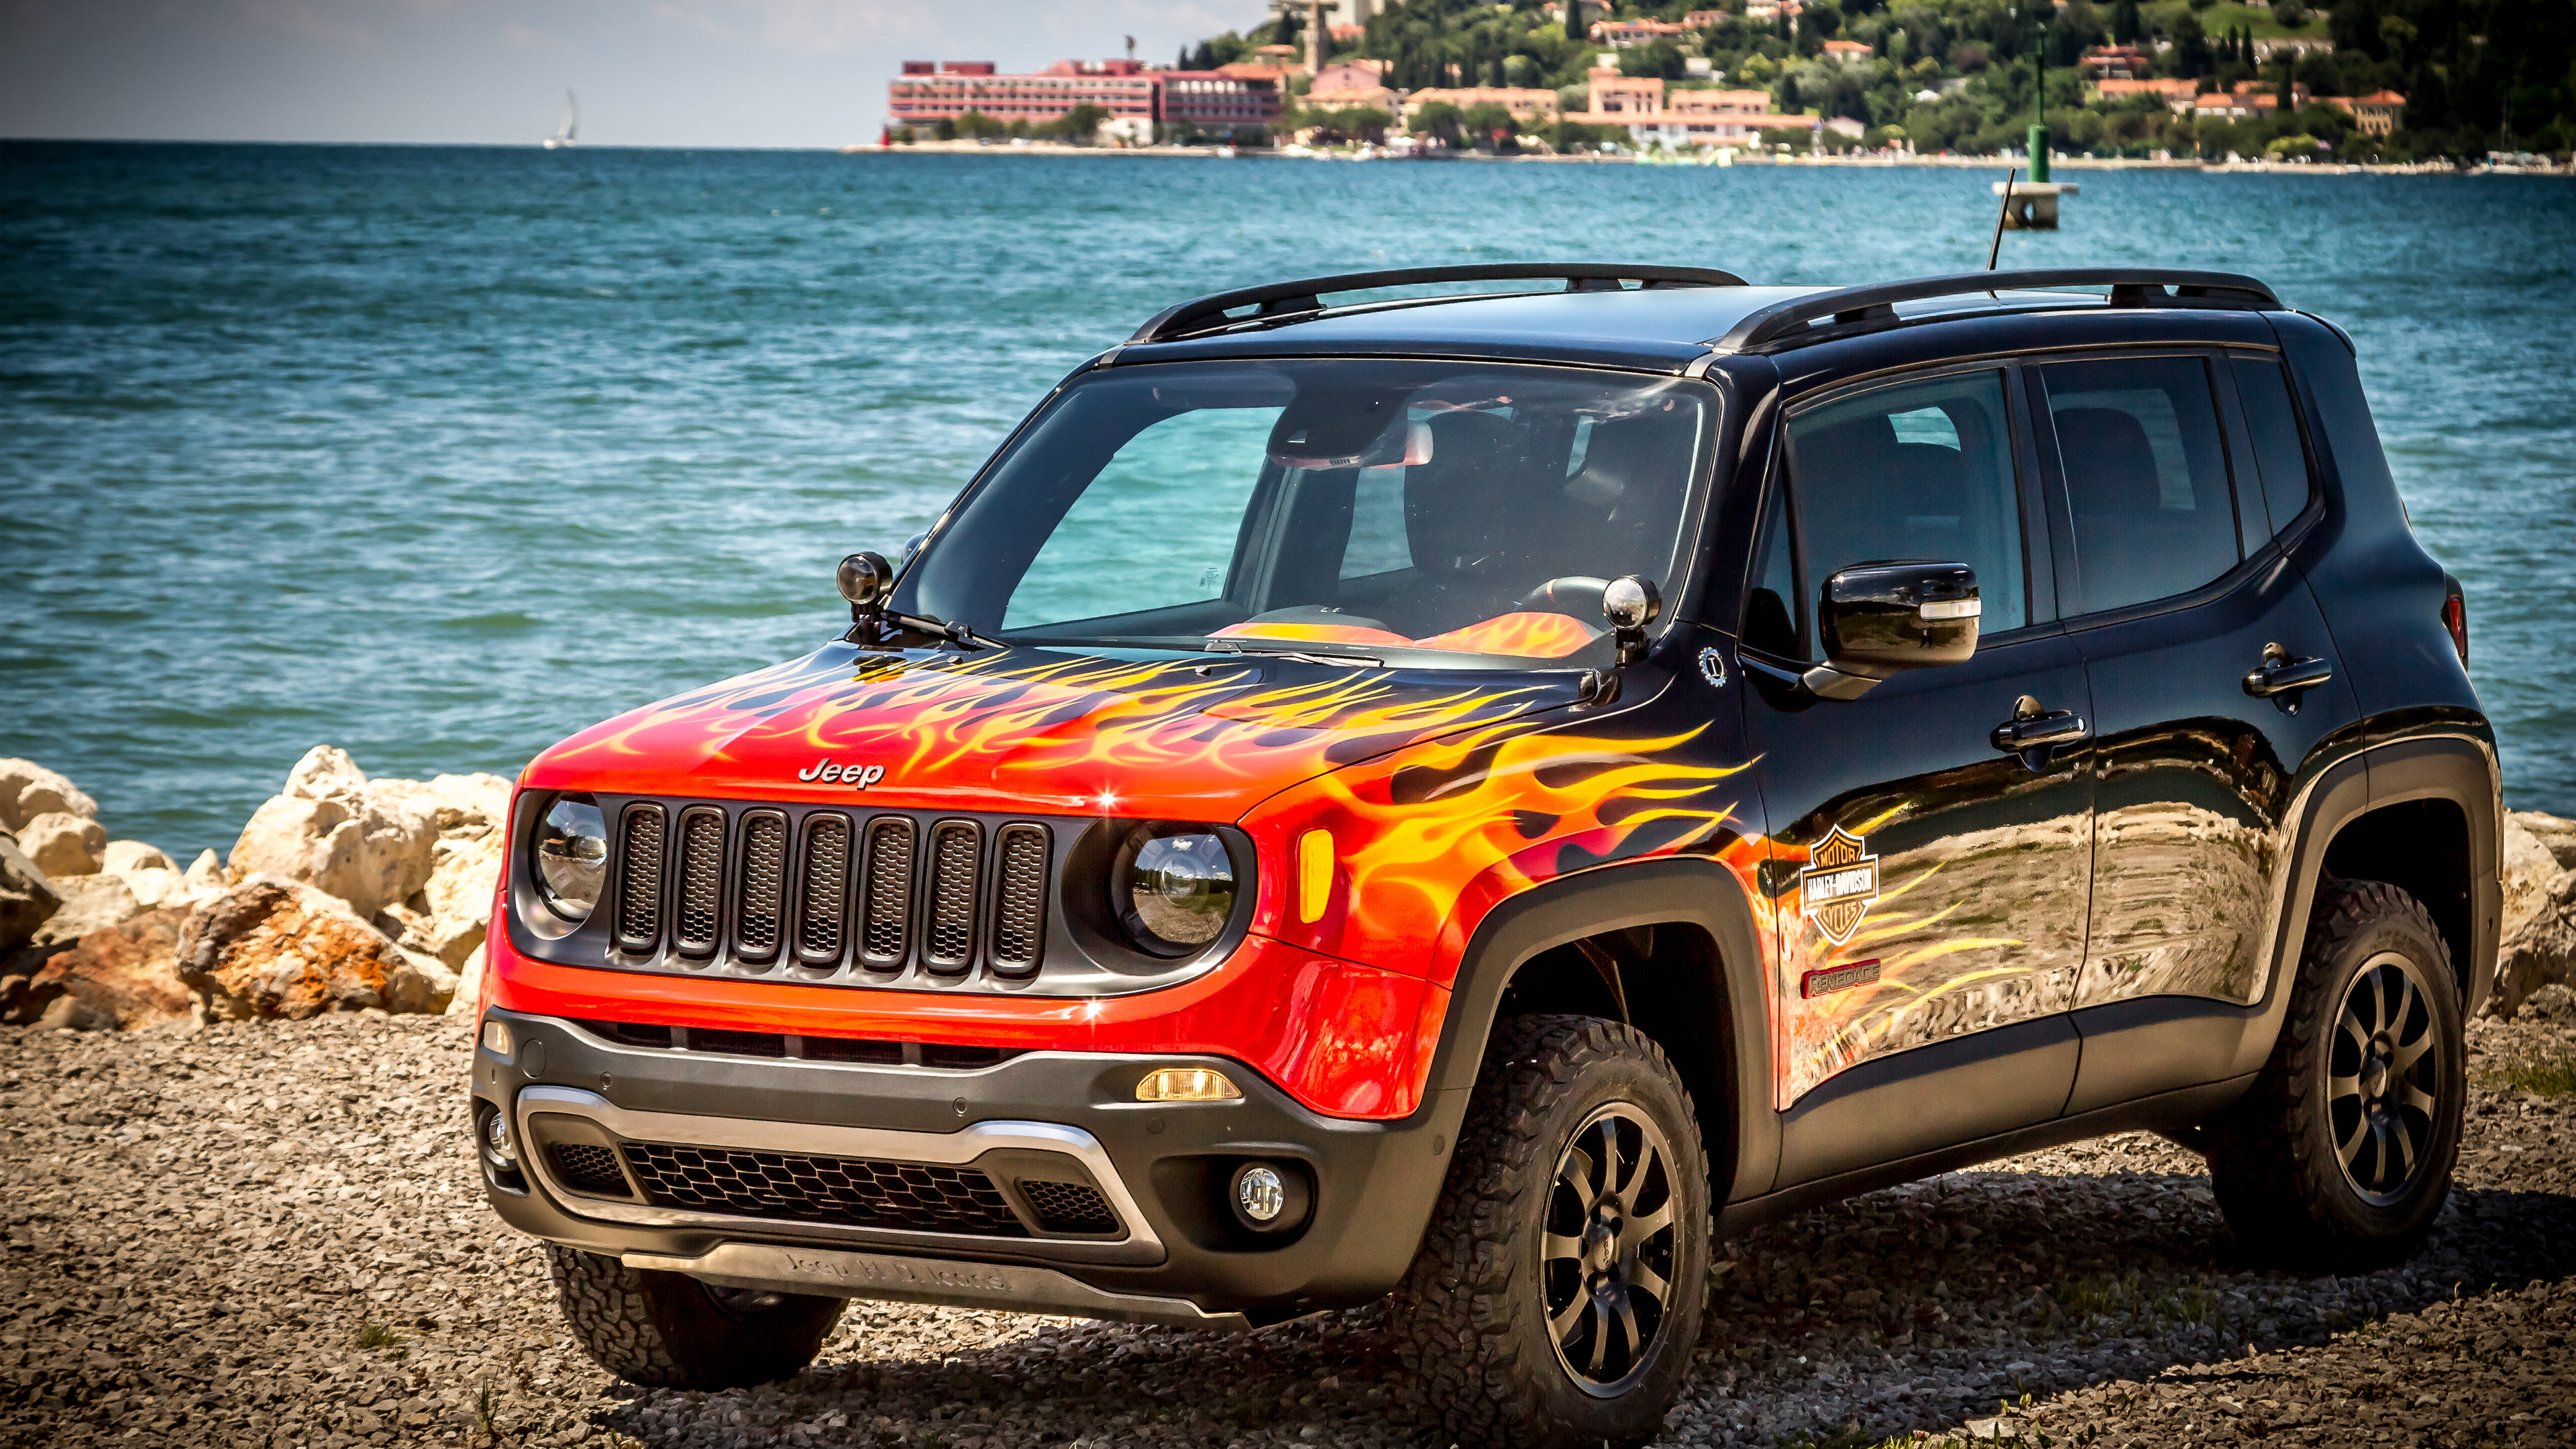 Jeep Car Images Hd: Jeep Renegade Hells Revenge 2 Wallpaper